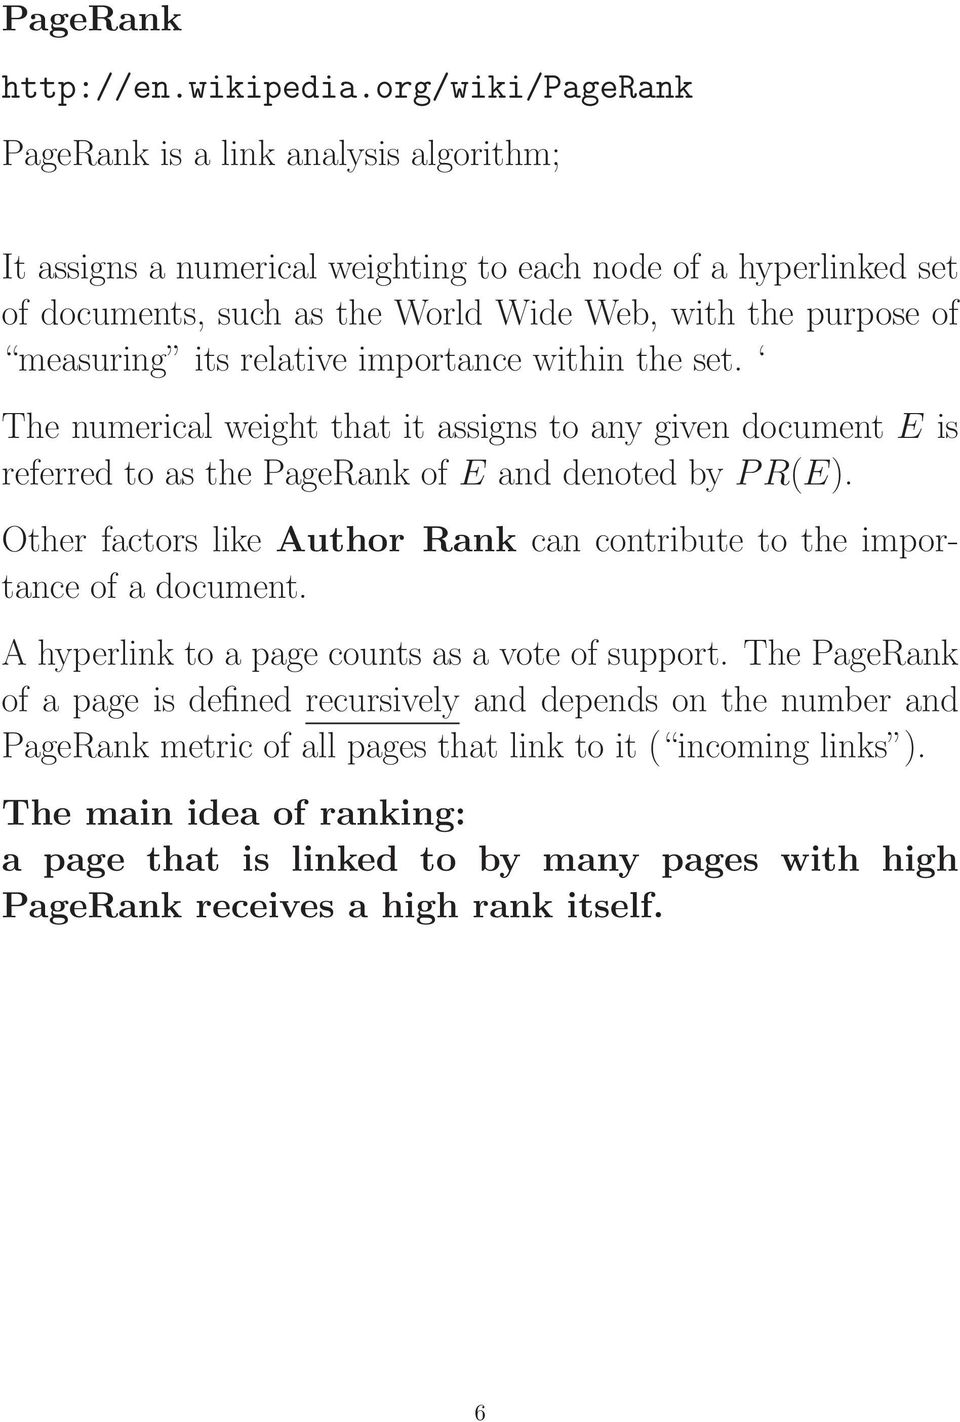 measuring its relative importance within the set. The numerical weight that it assigns to any given document E is referred to as the PageRank of E and denoted by PR(E).